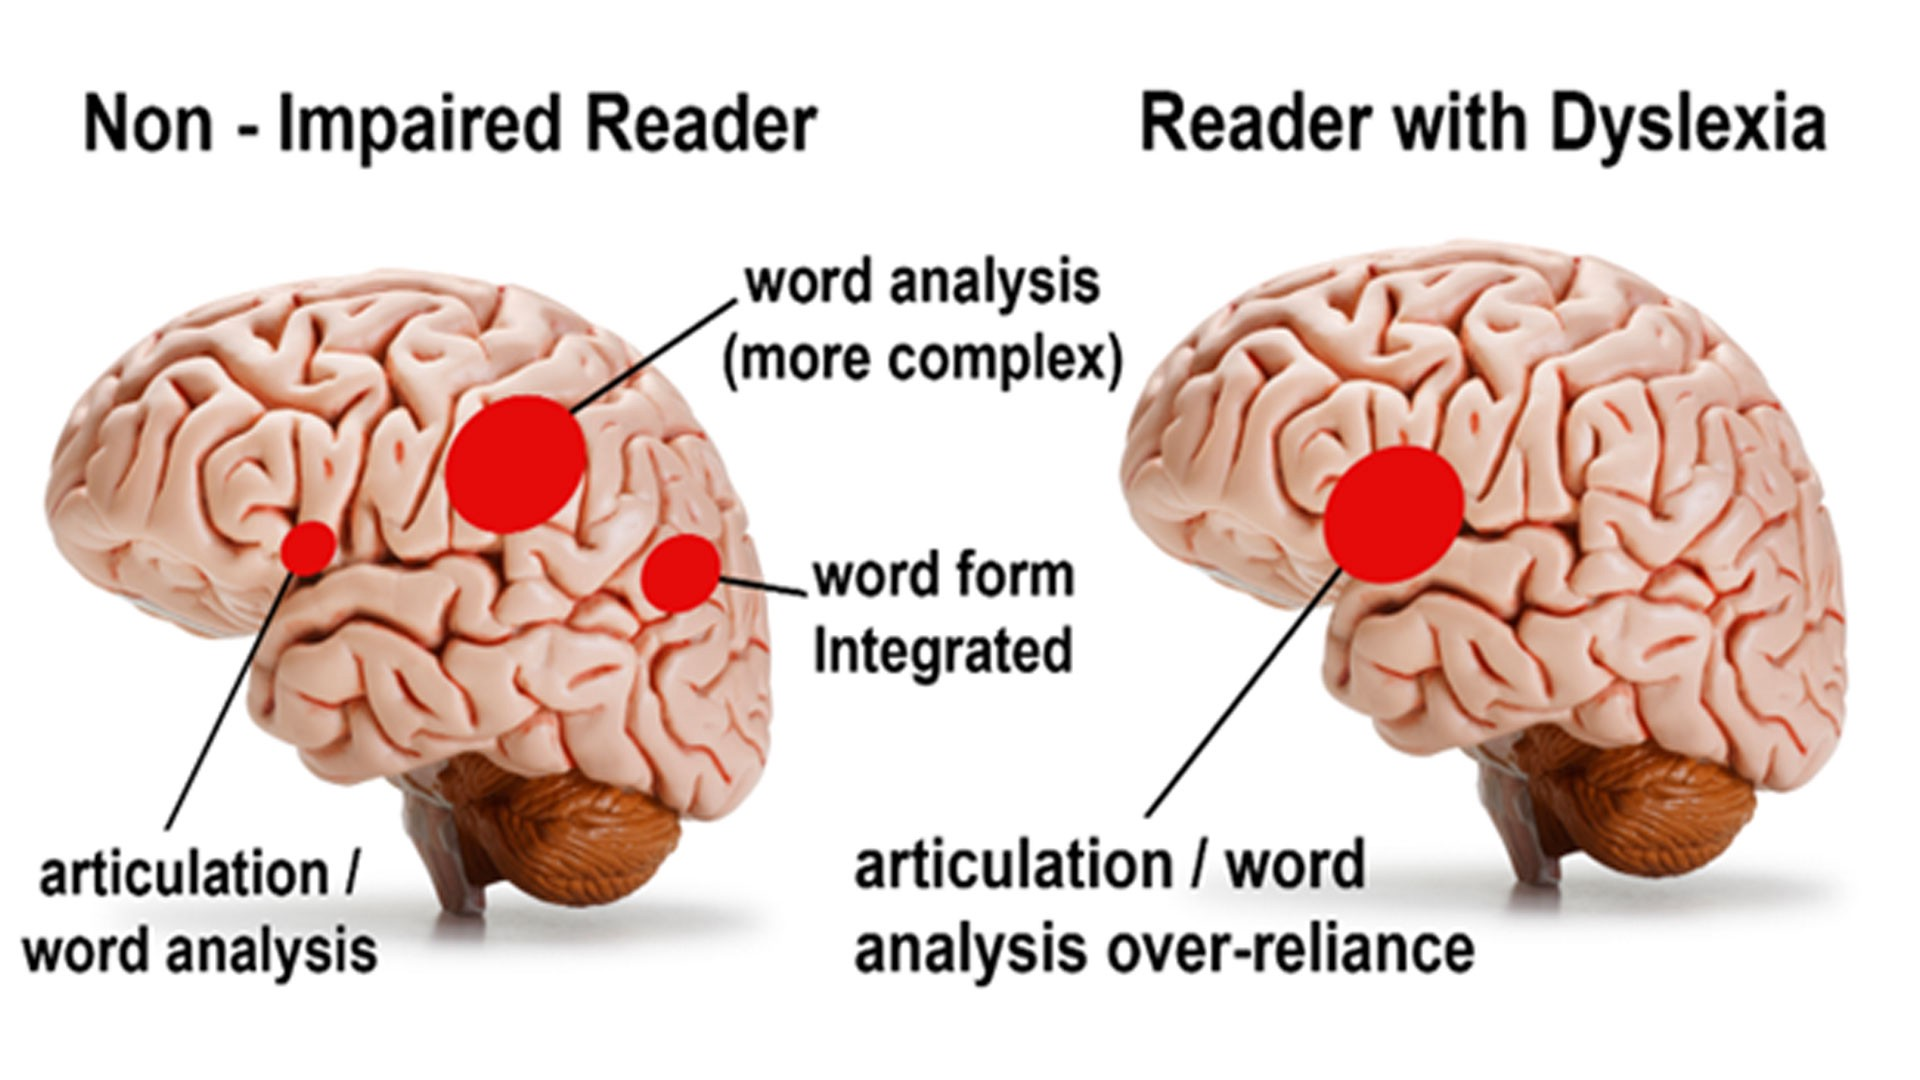 The left brain — comparing dyslexic and non-dyslexic brains.